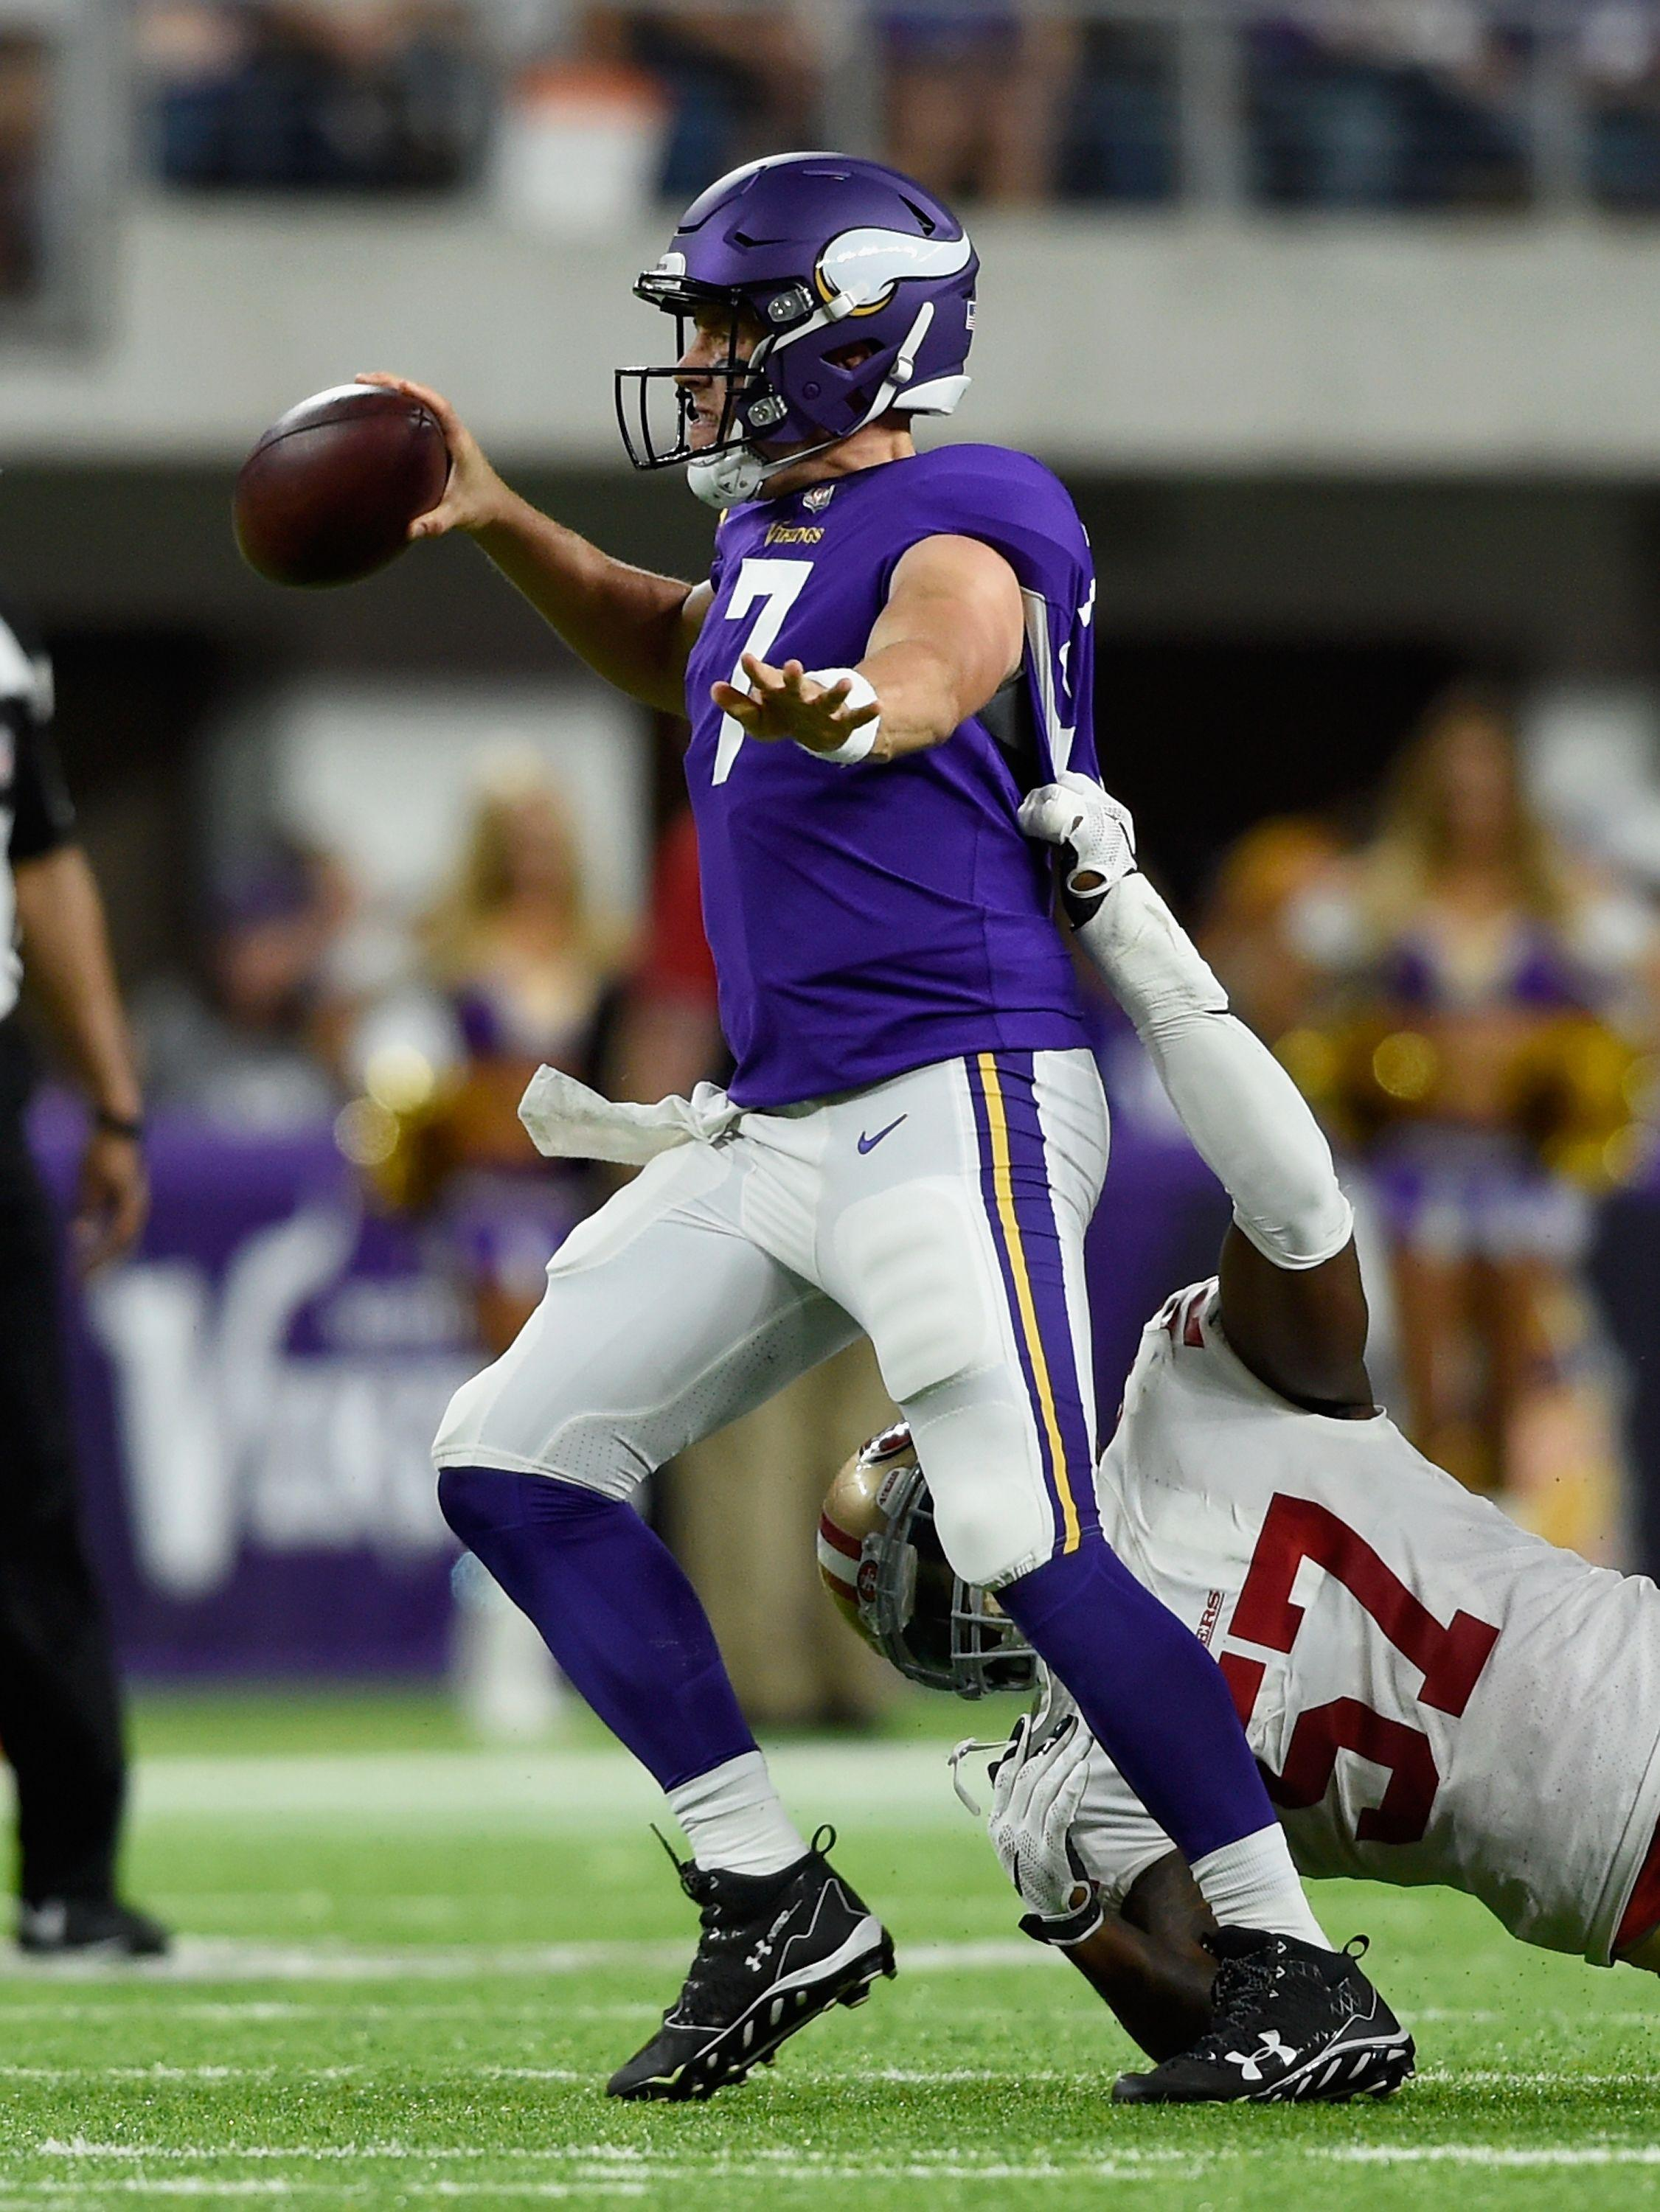 Vikings QB Case Keenum named to PFF Preseason Week 3 Team